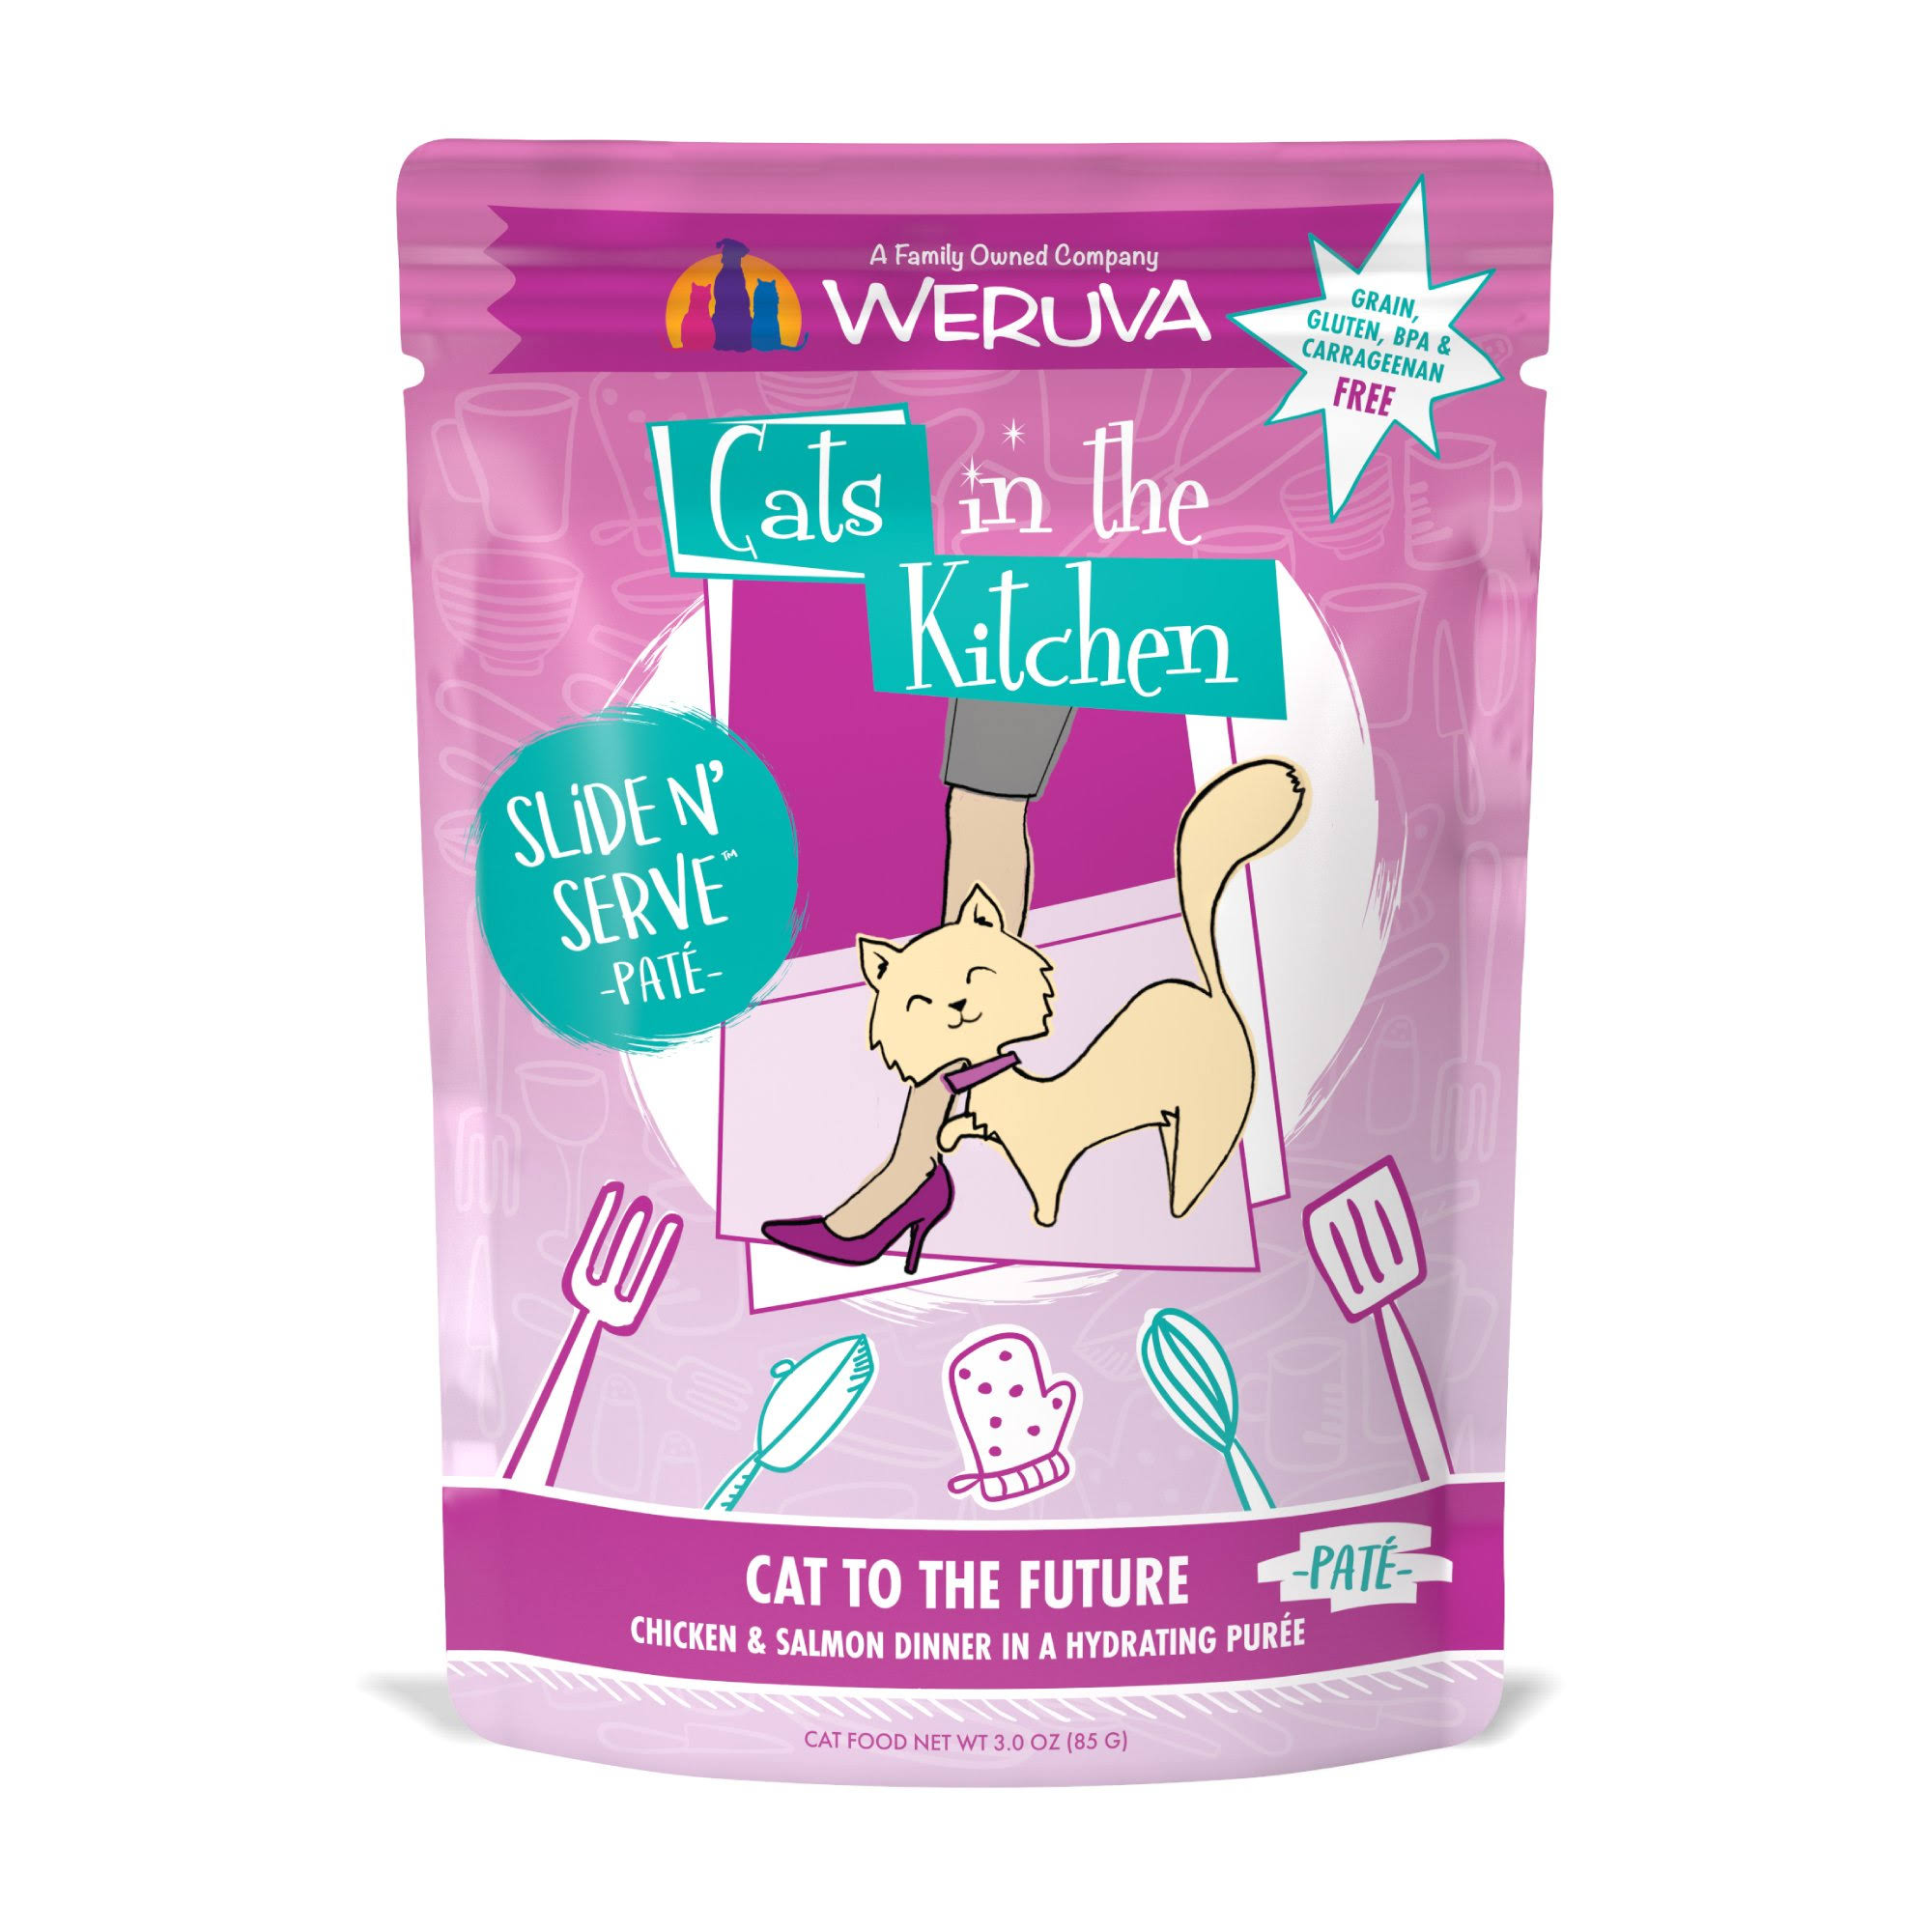 Weruva Cats in The Kitchen Pate Cat to The Future Chicken & Salmon Dinner in A Hydrating Puree Wet Cat Food, 3 oz., Case of 12